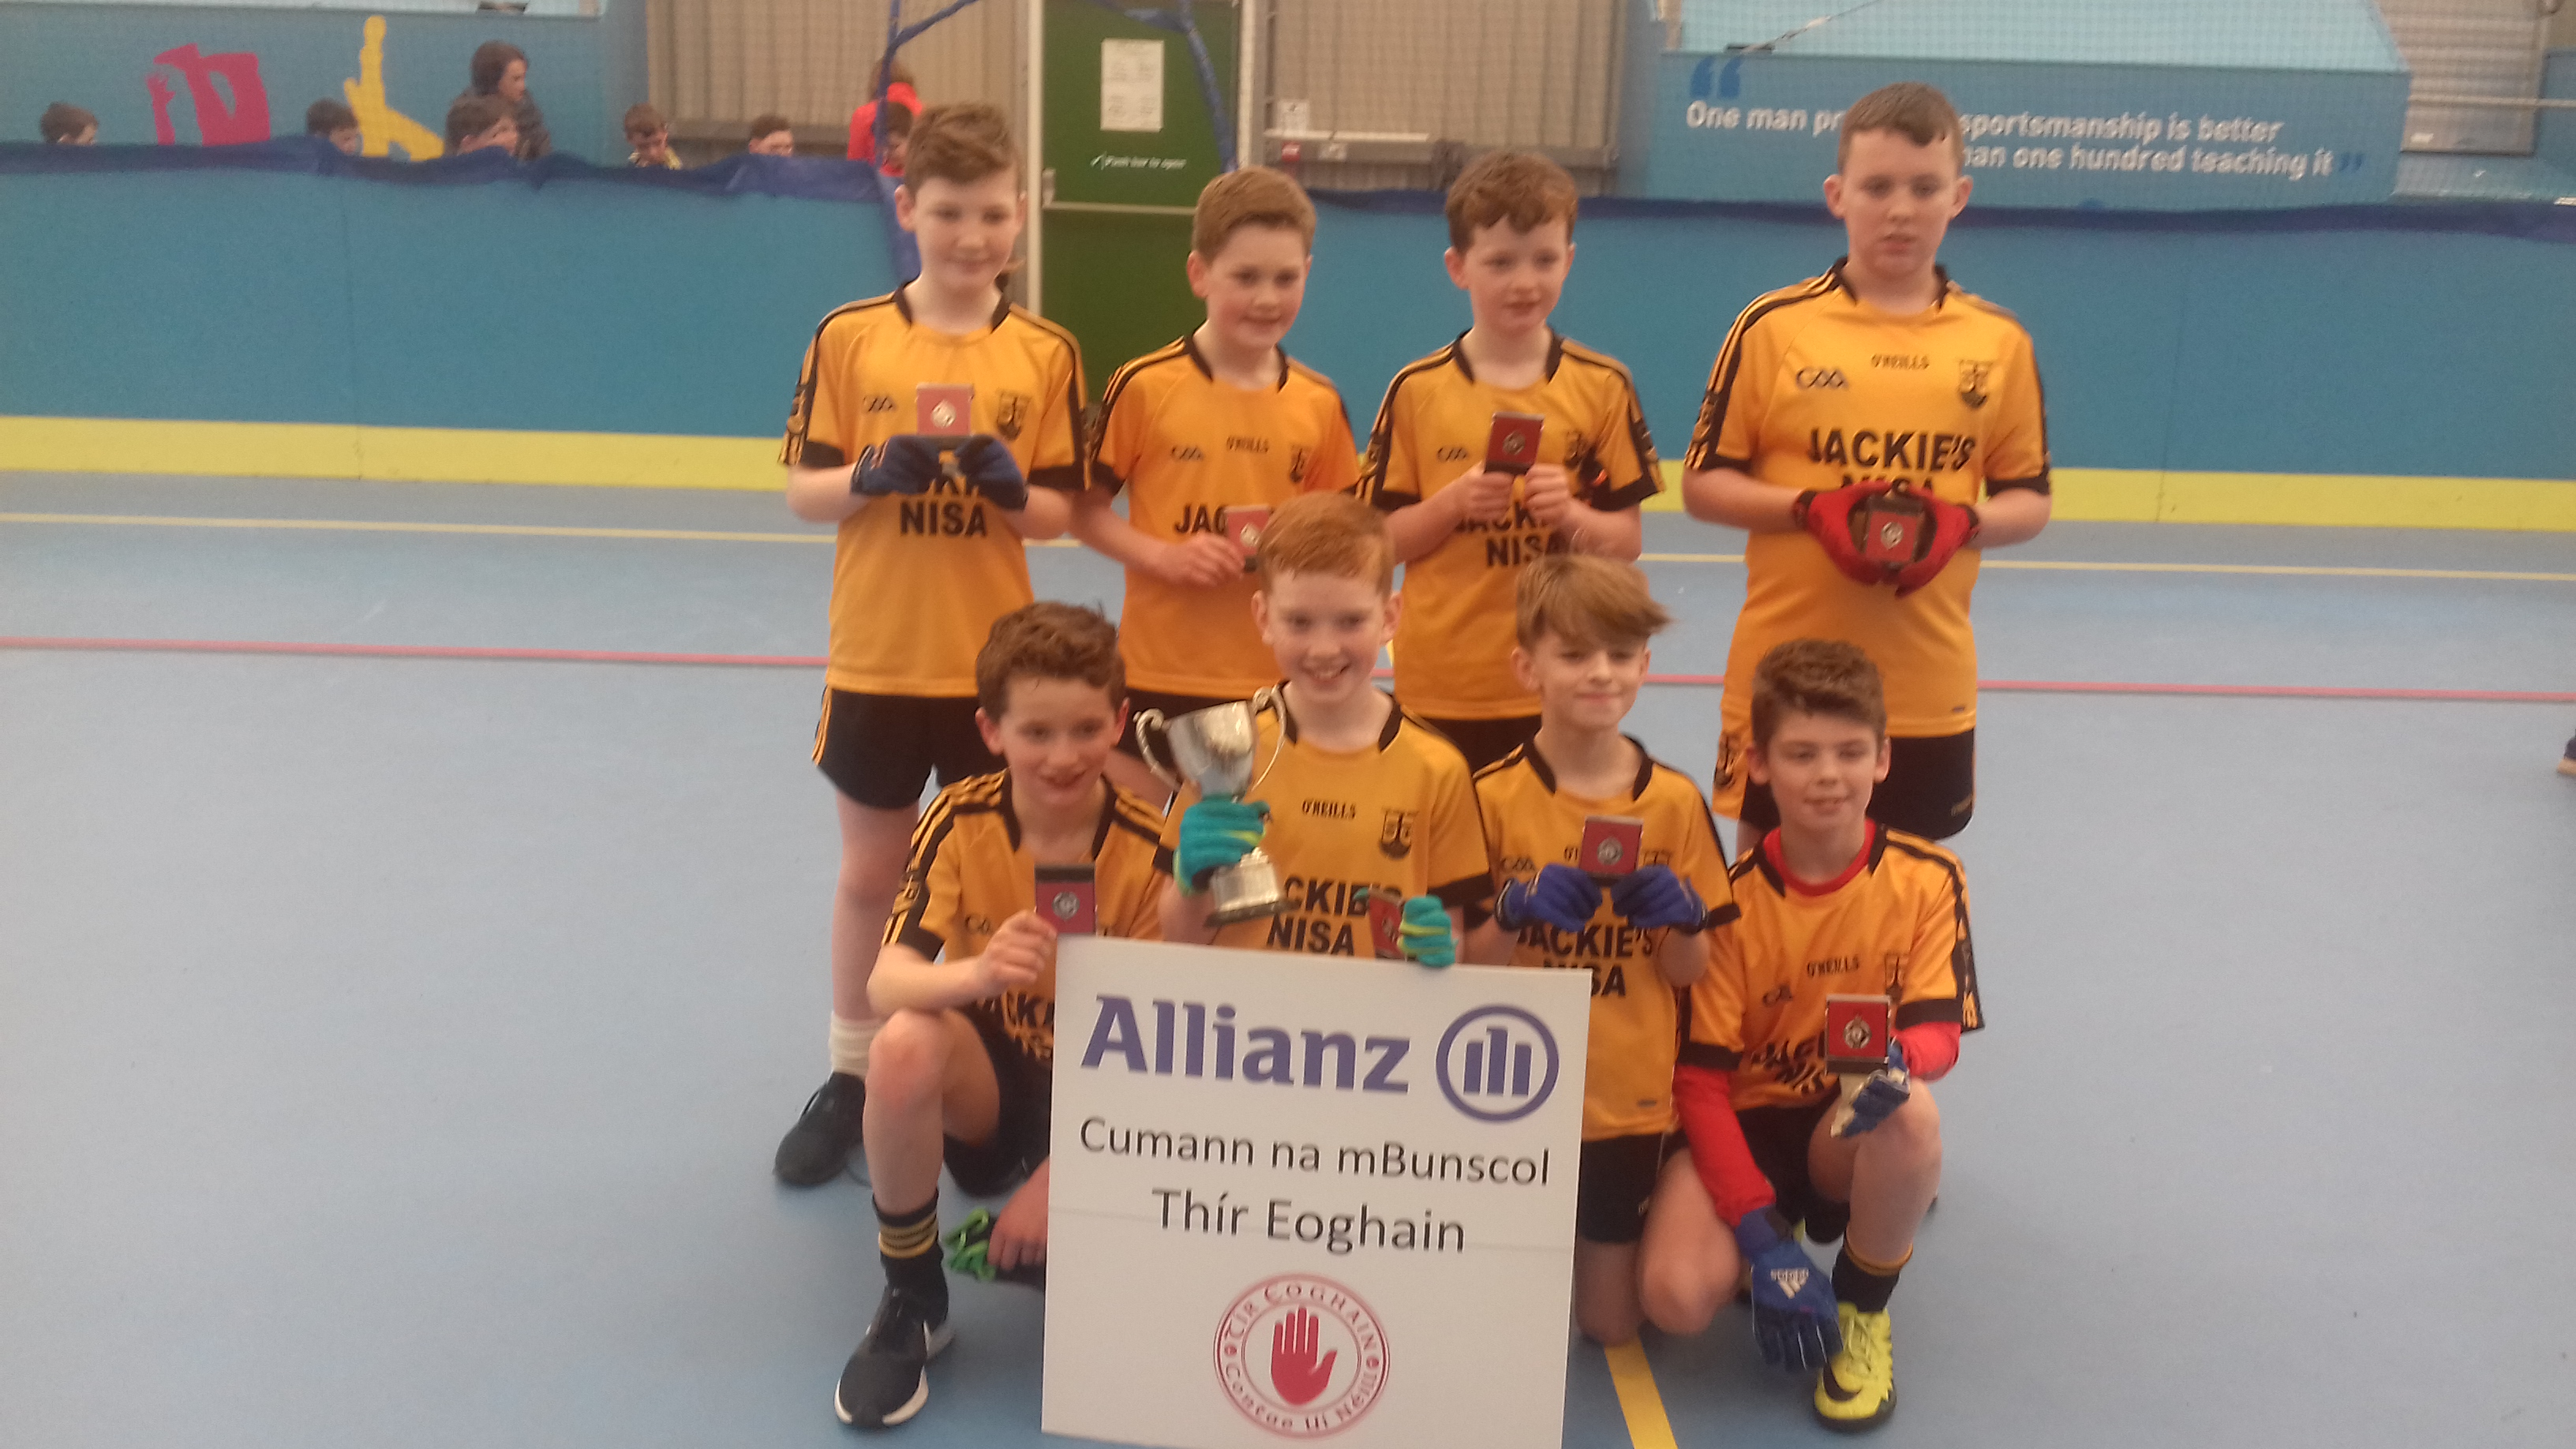 ALLIANZ CUMANN Na mBUNSCOL – BOYS' INDOOR FOOTBALL Tyrone Final 2017